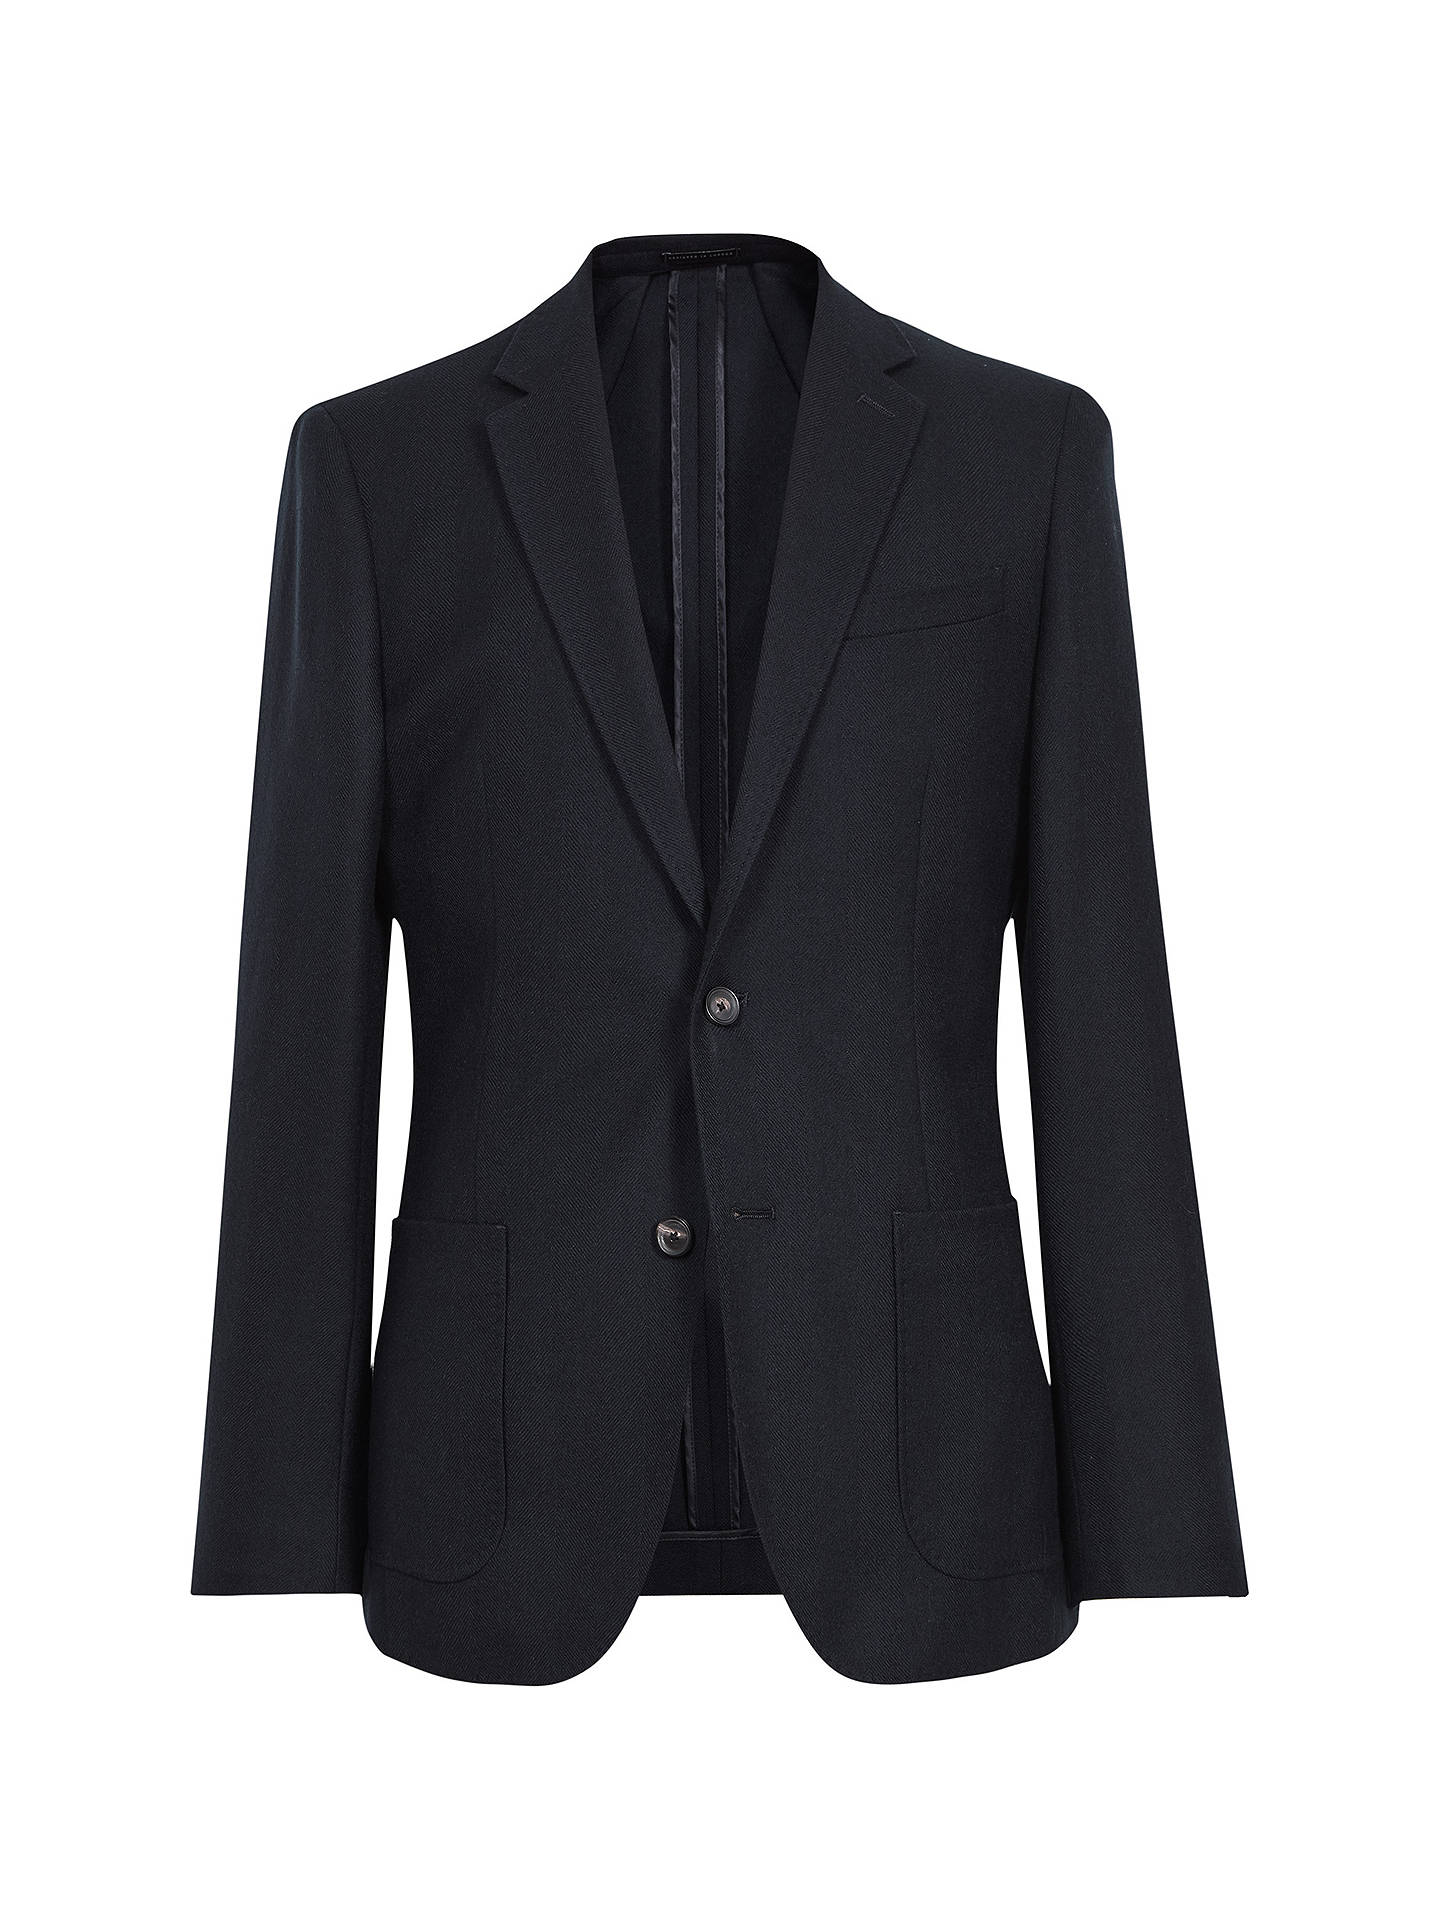 Buy Reiss Ribot Herringbone Wool Slim Fit Blazer, Navy, 44R Online at johnlewis.com